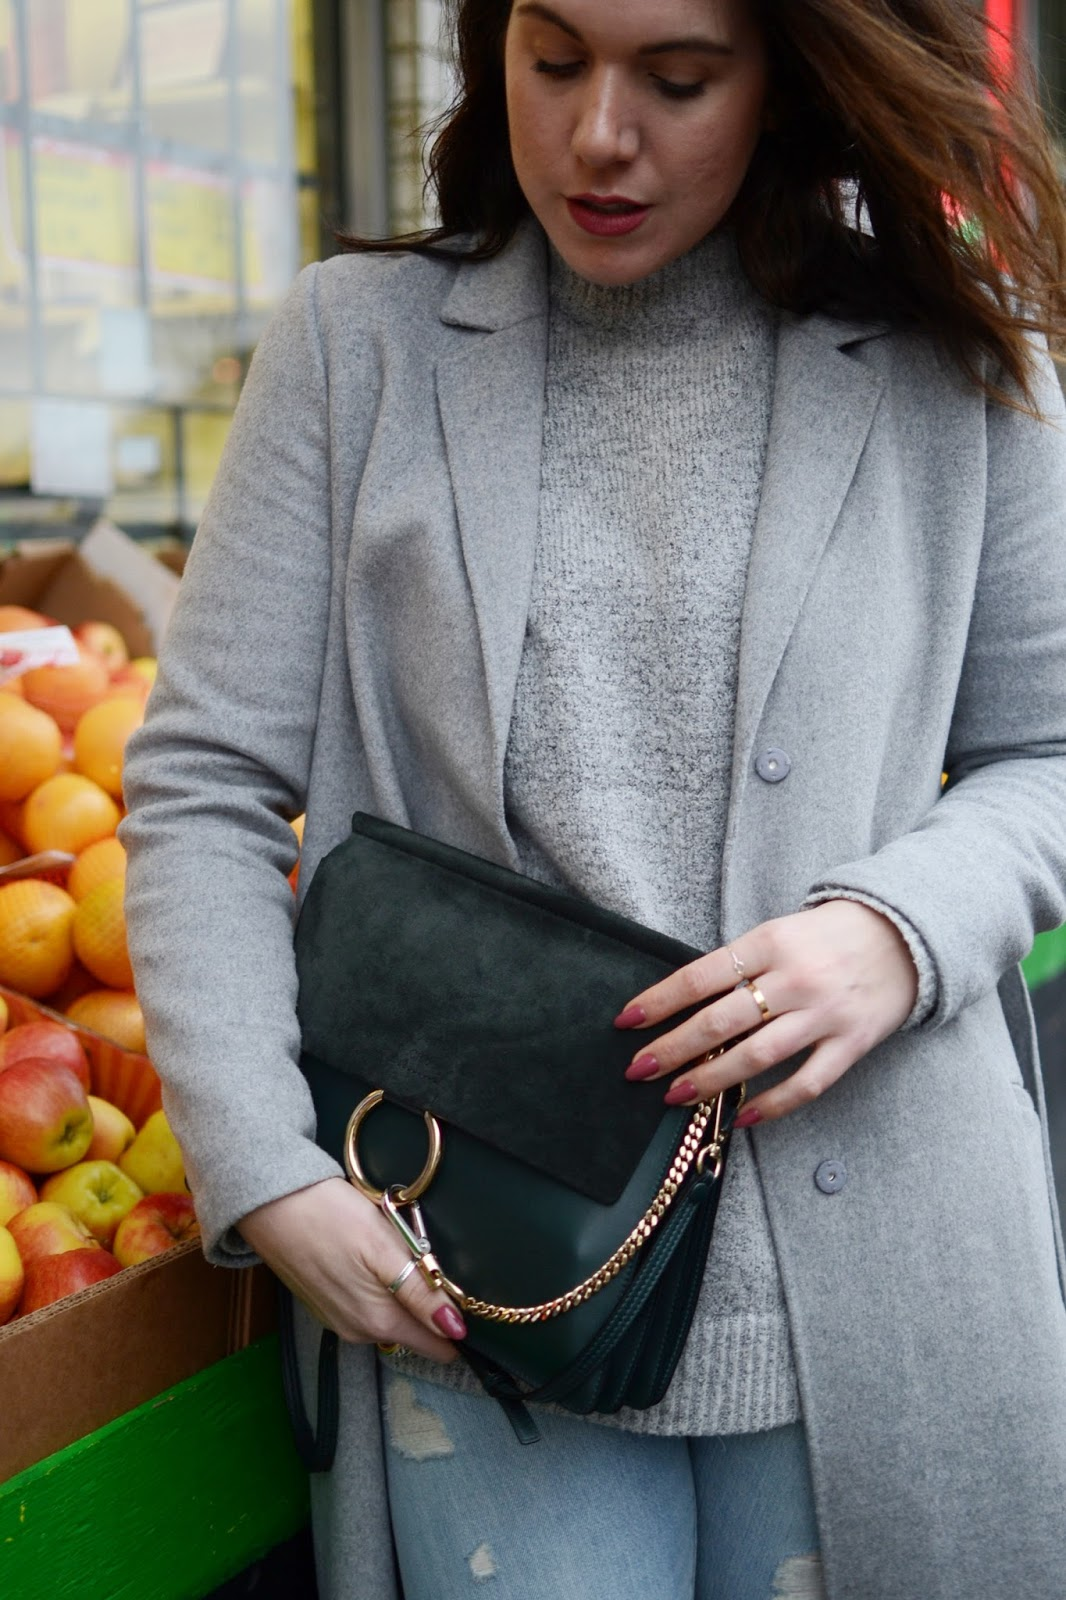 Grey wool coat winter outfit levis 501ct satin ankle boots chloe faye bag vancouver fashion blogger aleesha harris